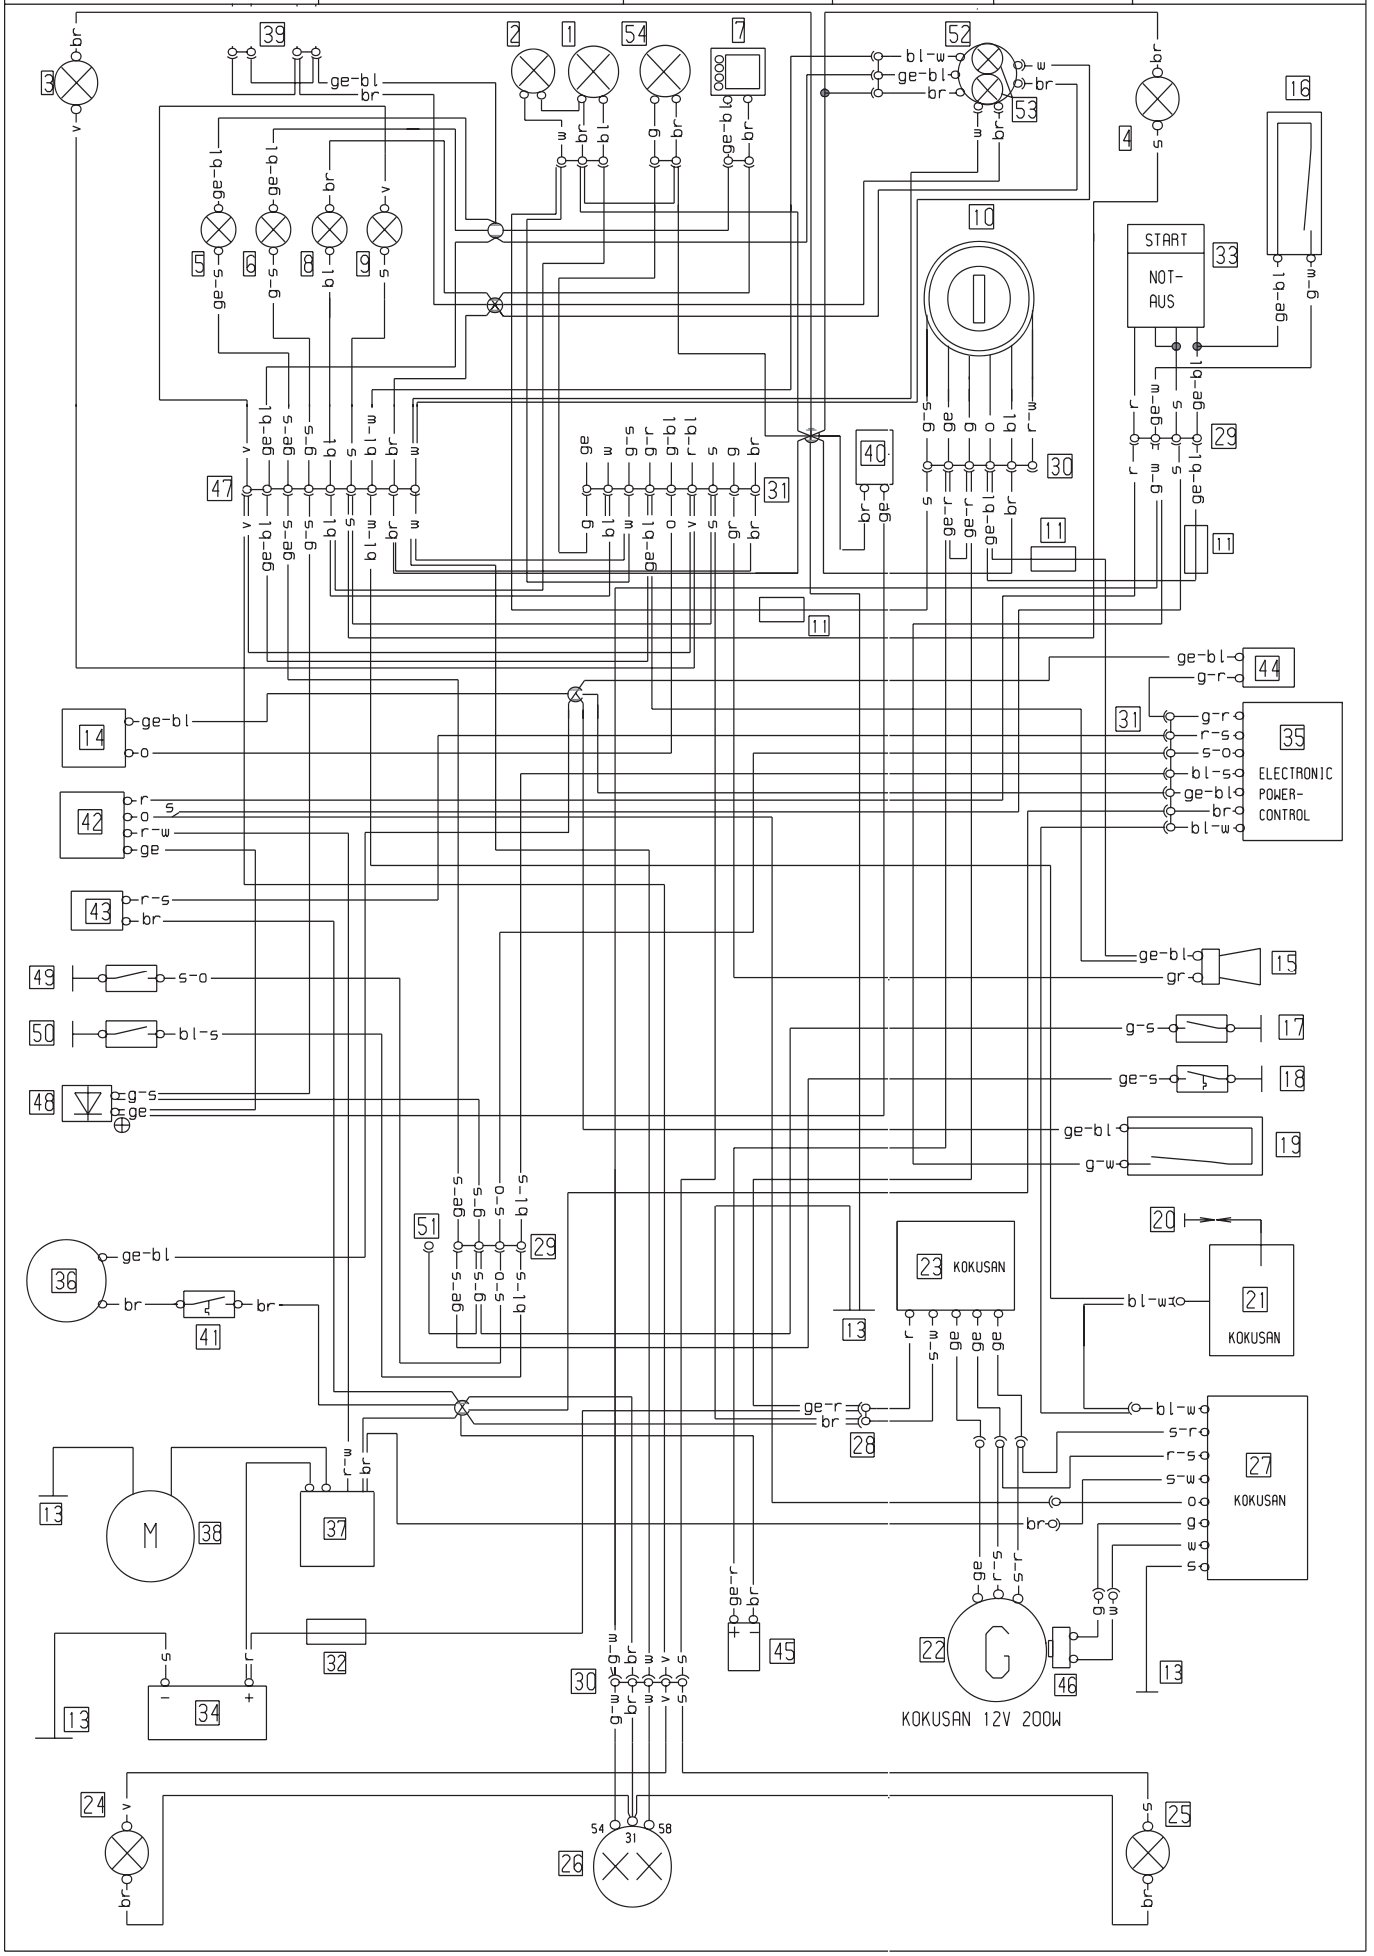 Ktm Duke 640 Wiring Diagram - Wiring Diagram Liry Ktm Wiring Diagrams on dodge wiring diagram, garelli wiring diagram, beta wiring diagram, ossa wiring diagram, bajaj wiring diagram, ariel wiring diagram, mitsubishi wiring diagram, international wiring diagram, cf moto wiring diagram, kia wiring diagram, tomos wiring diagram, norton wiring diagram, mercury wiring diagram, nissan wiring diagram, honda wiring diagram, husaberg wiring diagram, ajs wiring diagram, thor wiring diagram, naza wiring diagram, kawasaki wiring diagram,